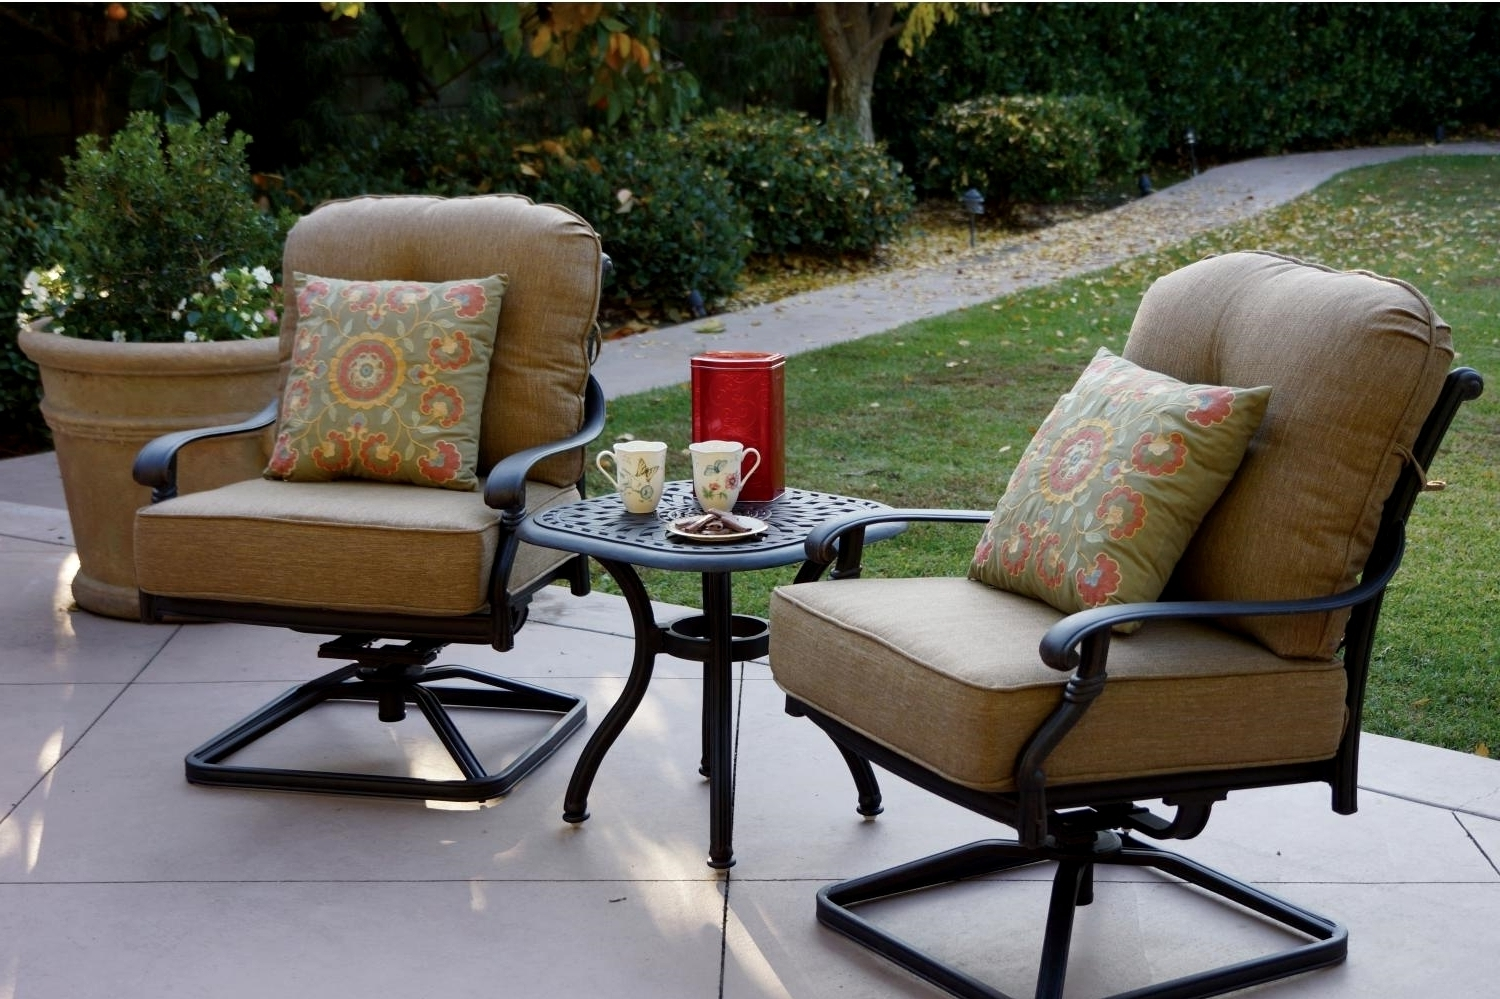 Rocking Chairs For Patio Throughout Well Known Patio Furniture Cast Aluminum Deep Seating Rocker Set Swivel Club (View 9 of 15)